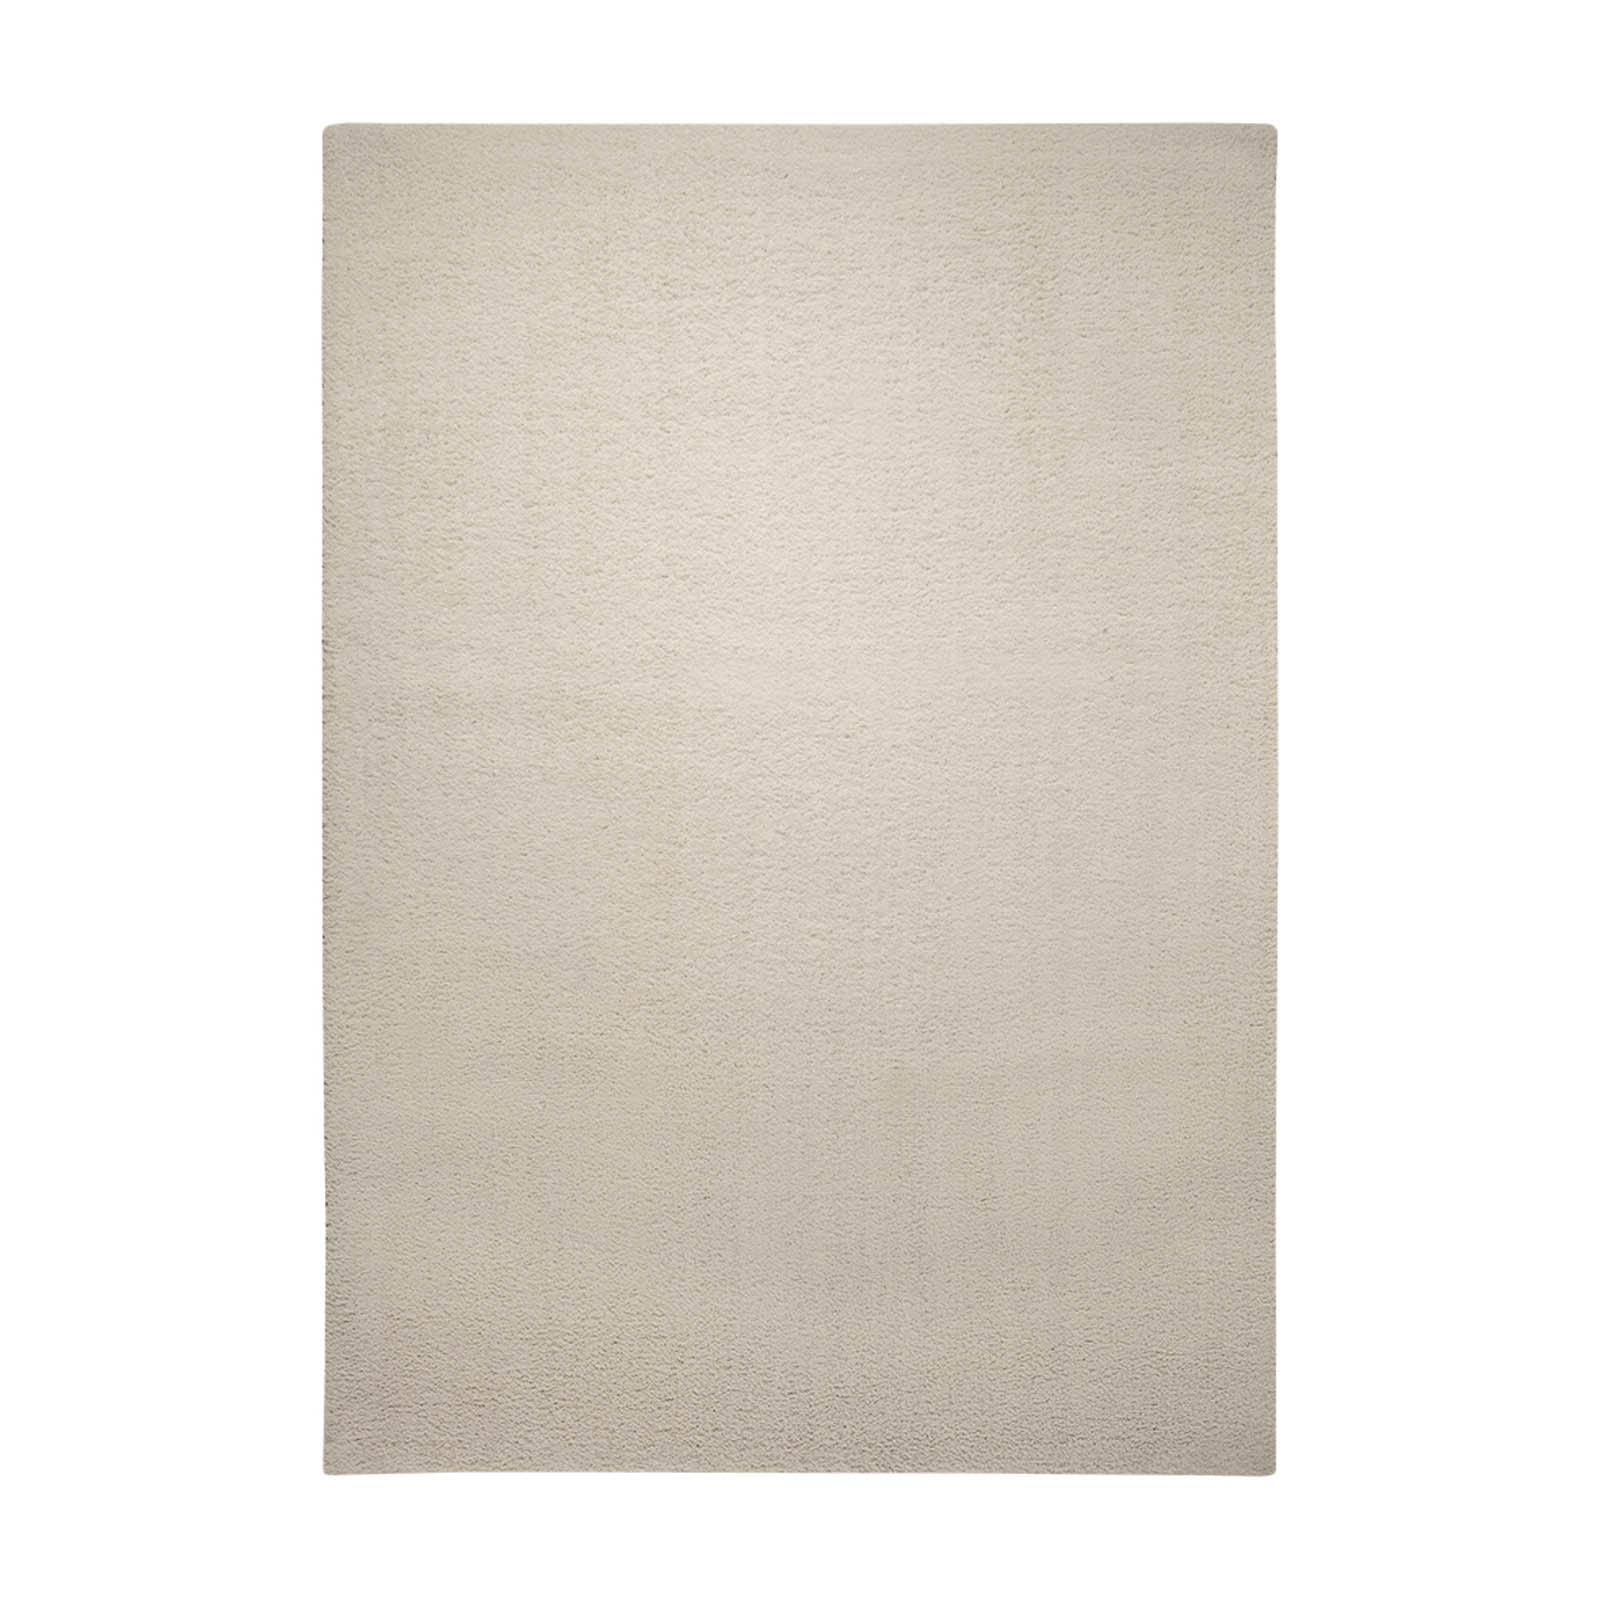 Chill Glamour Rugs 8250 29 by Esprit in Light Beige